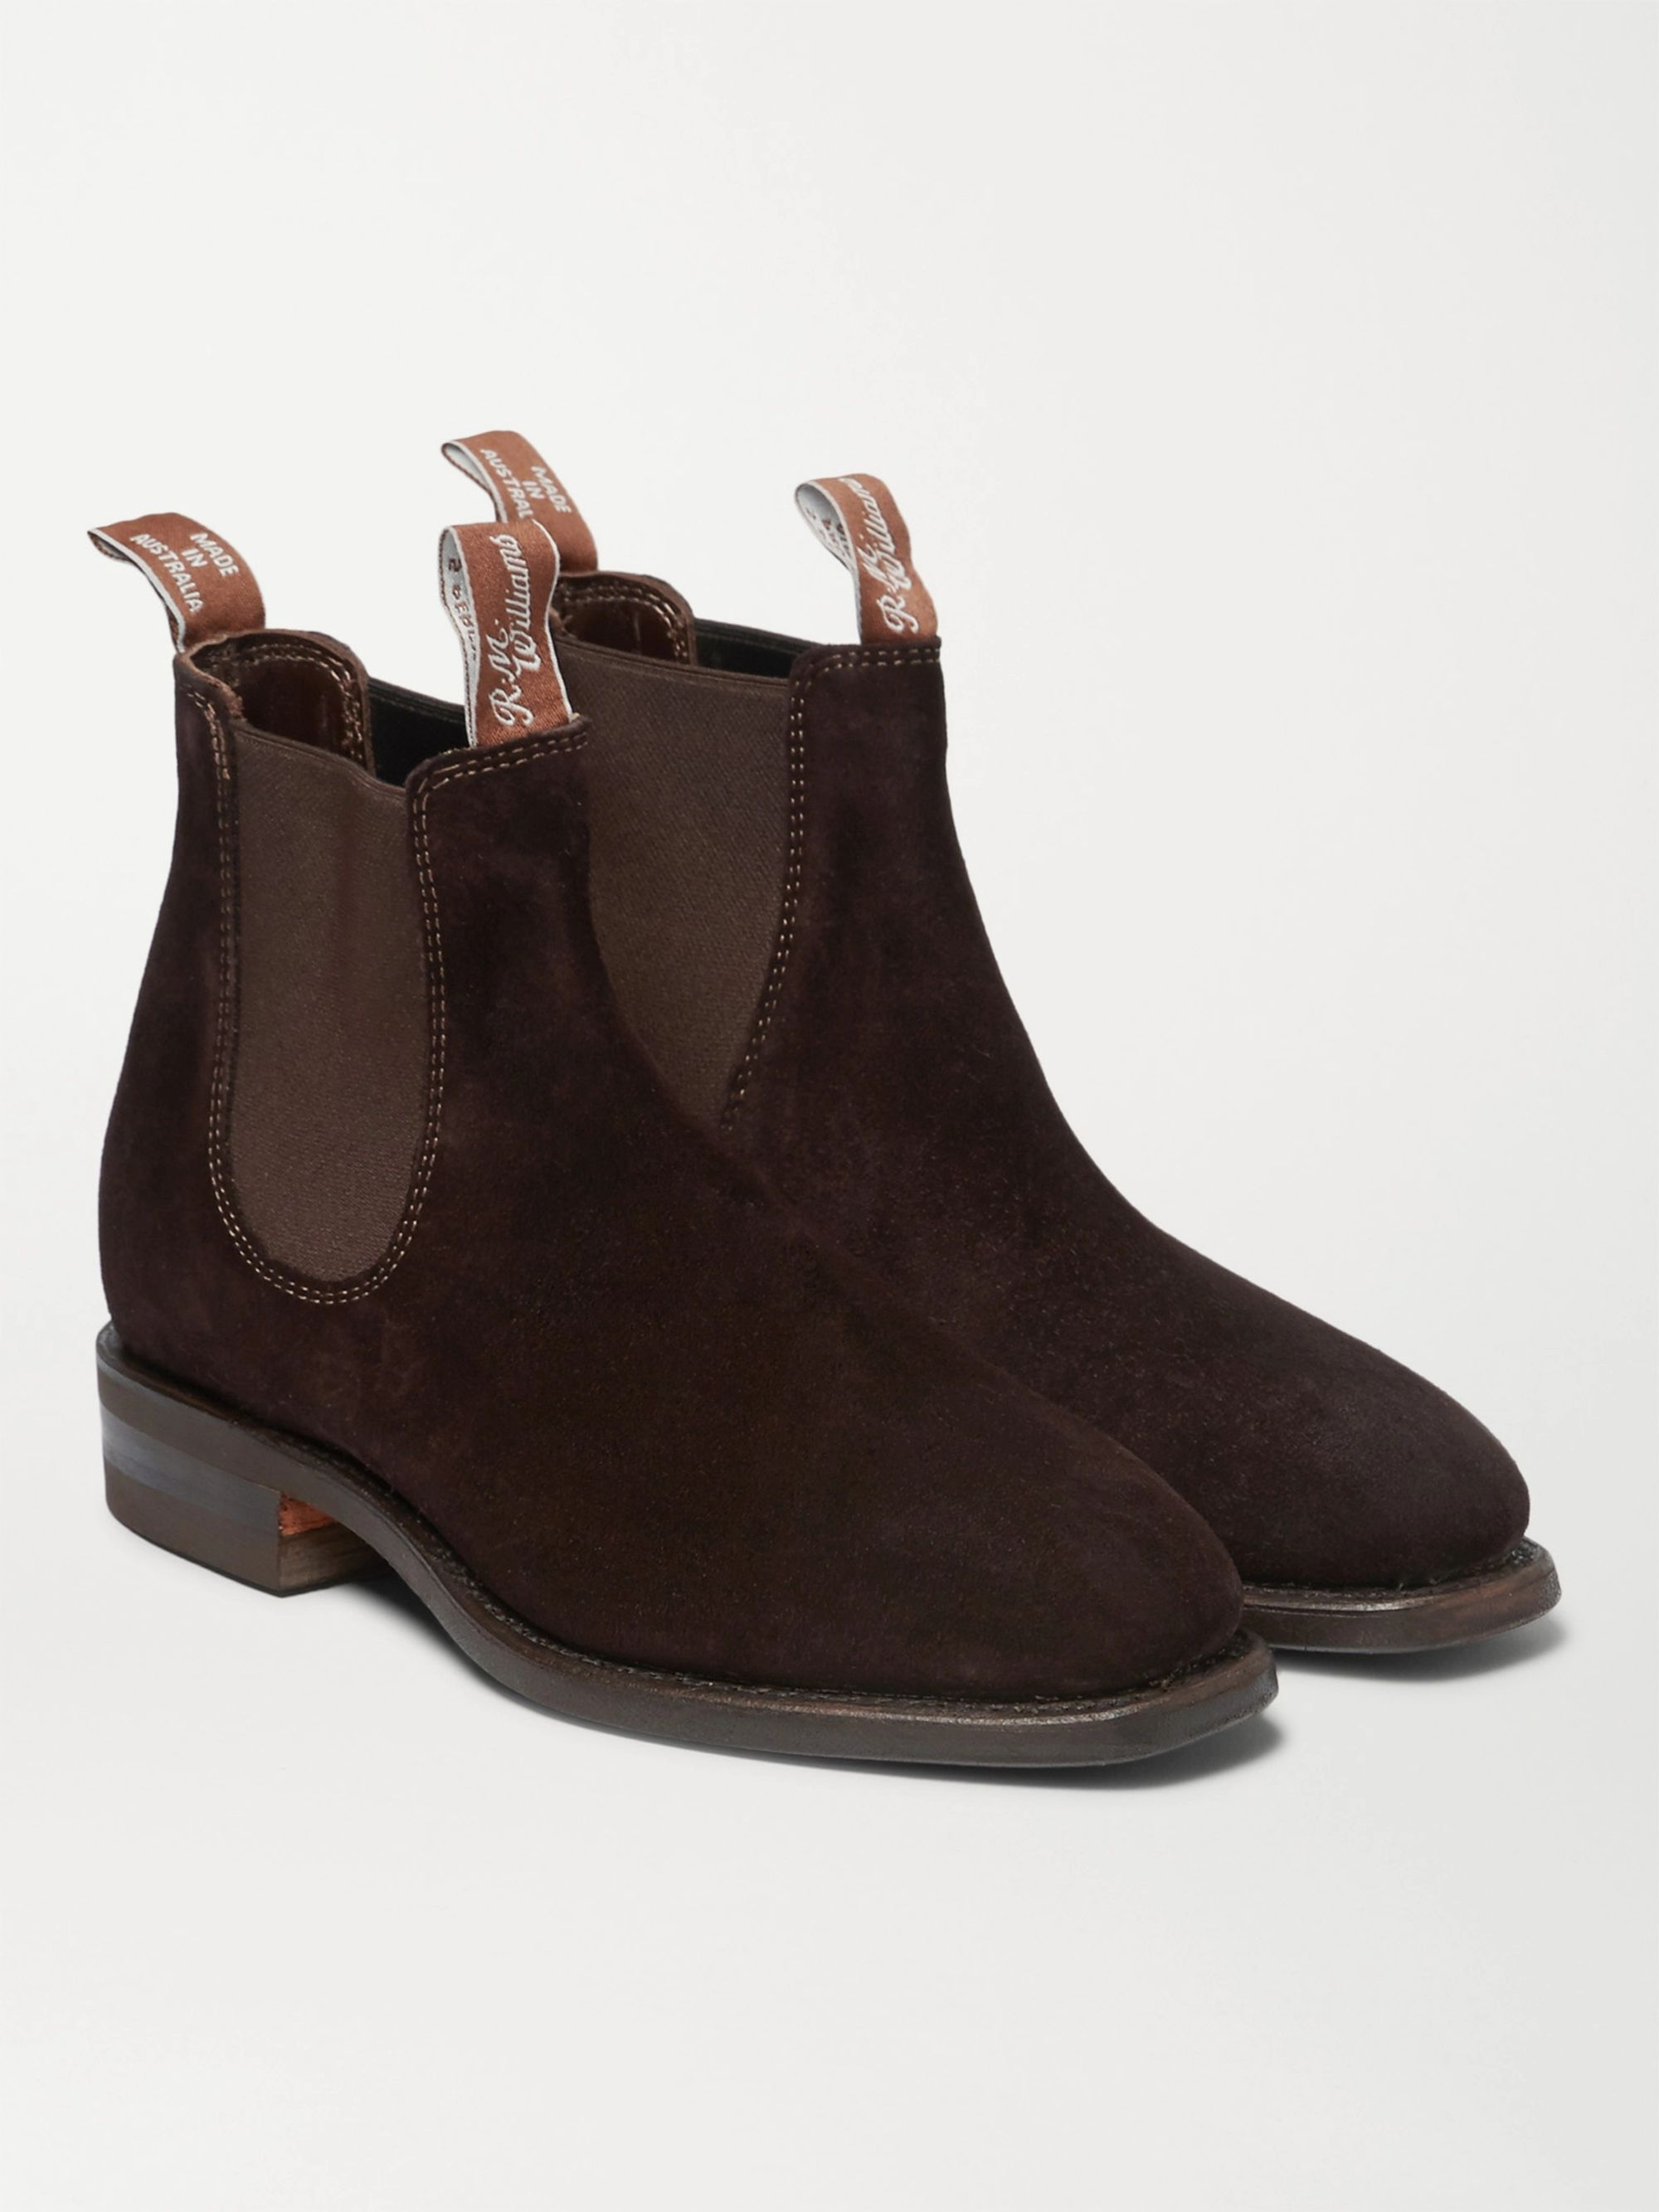 R.M.Williams Comfort Craftsman Suede Chelsea Boots